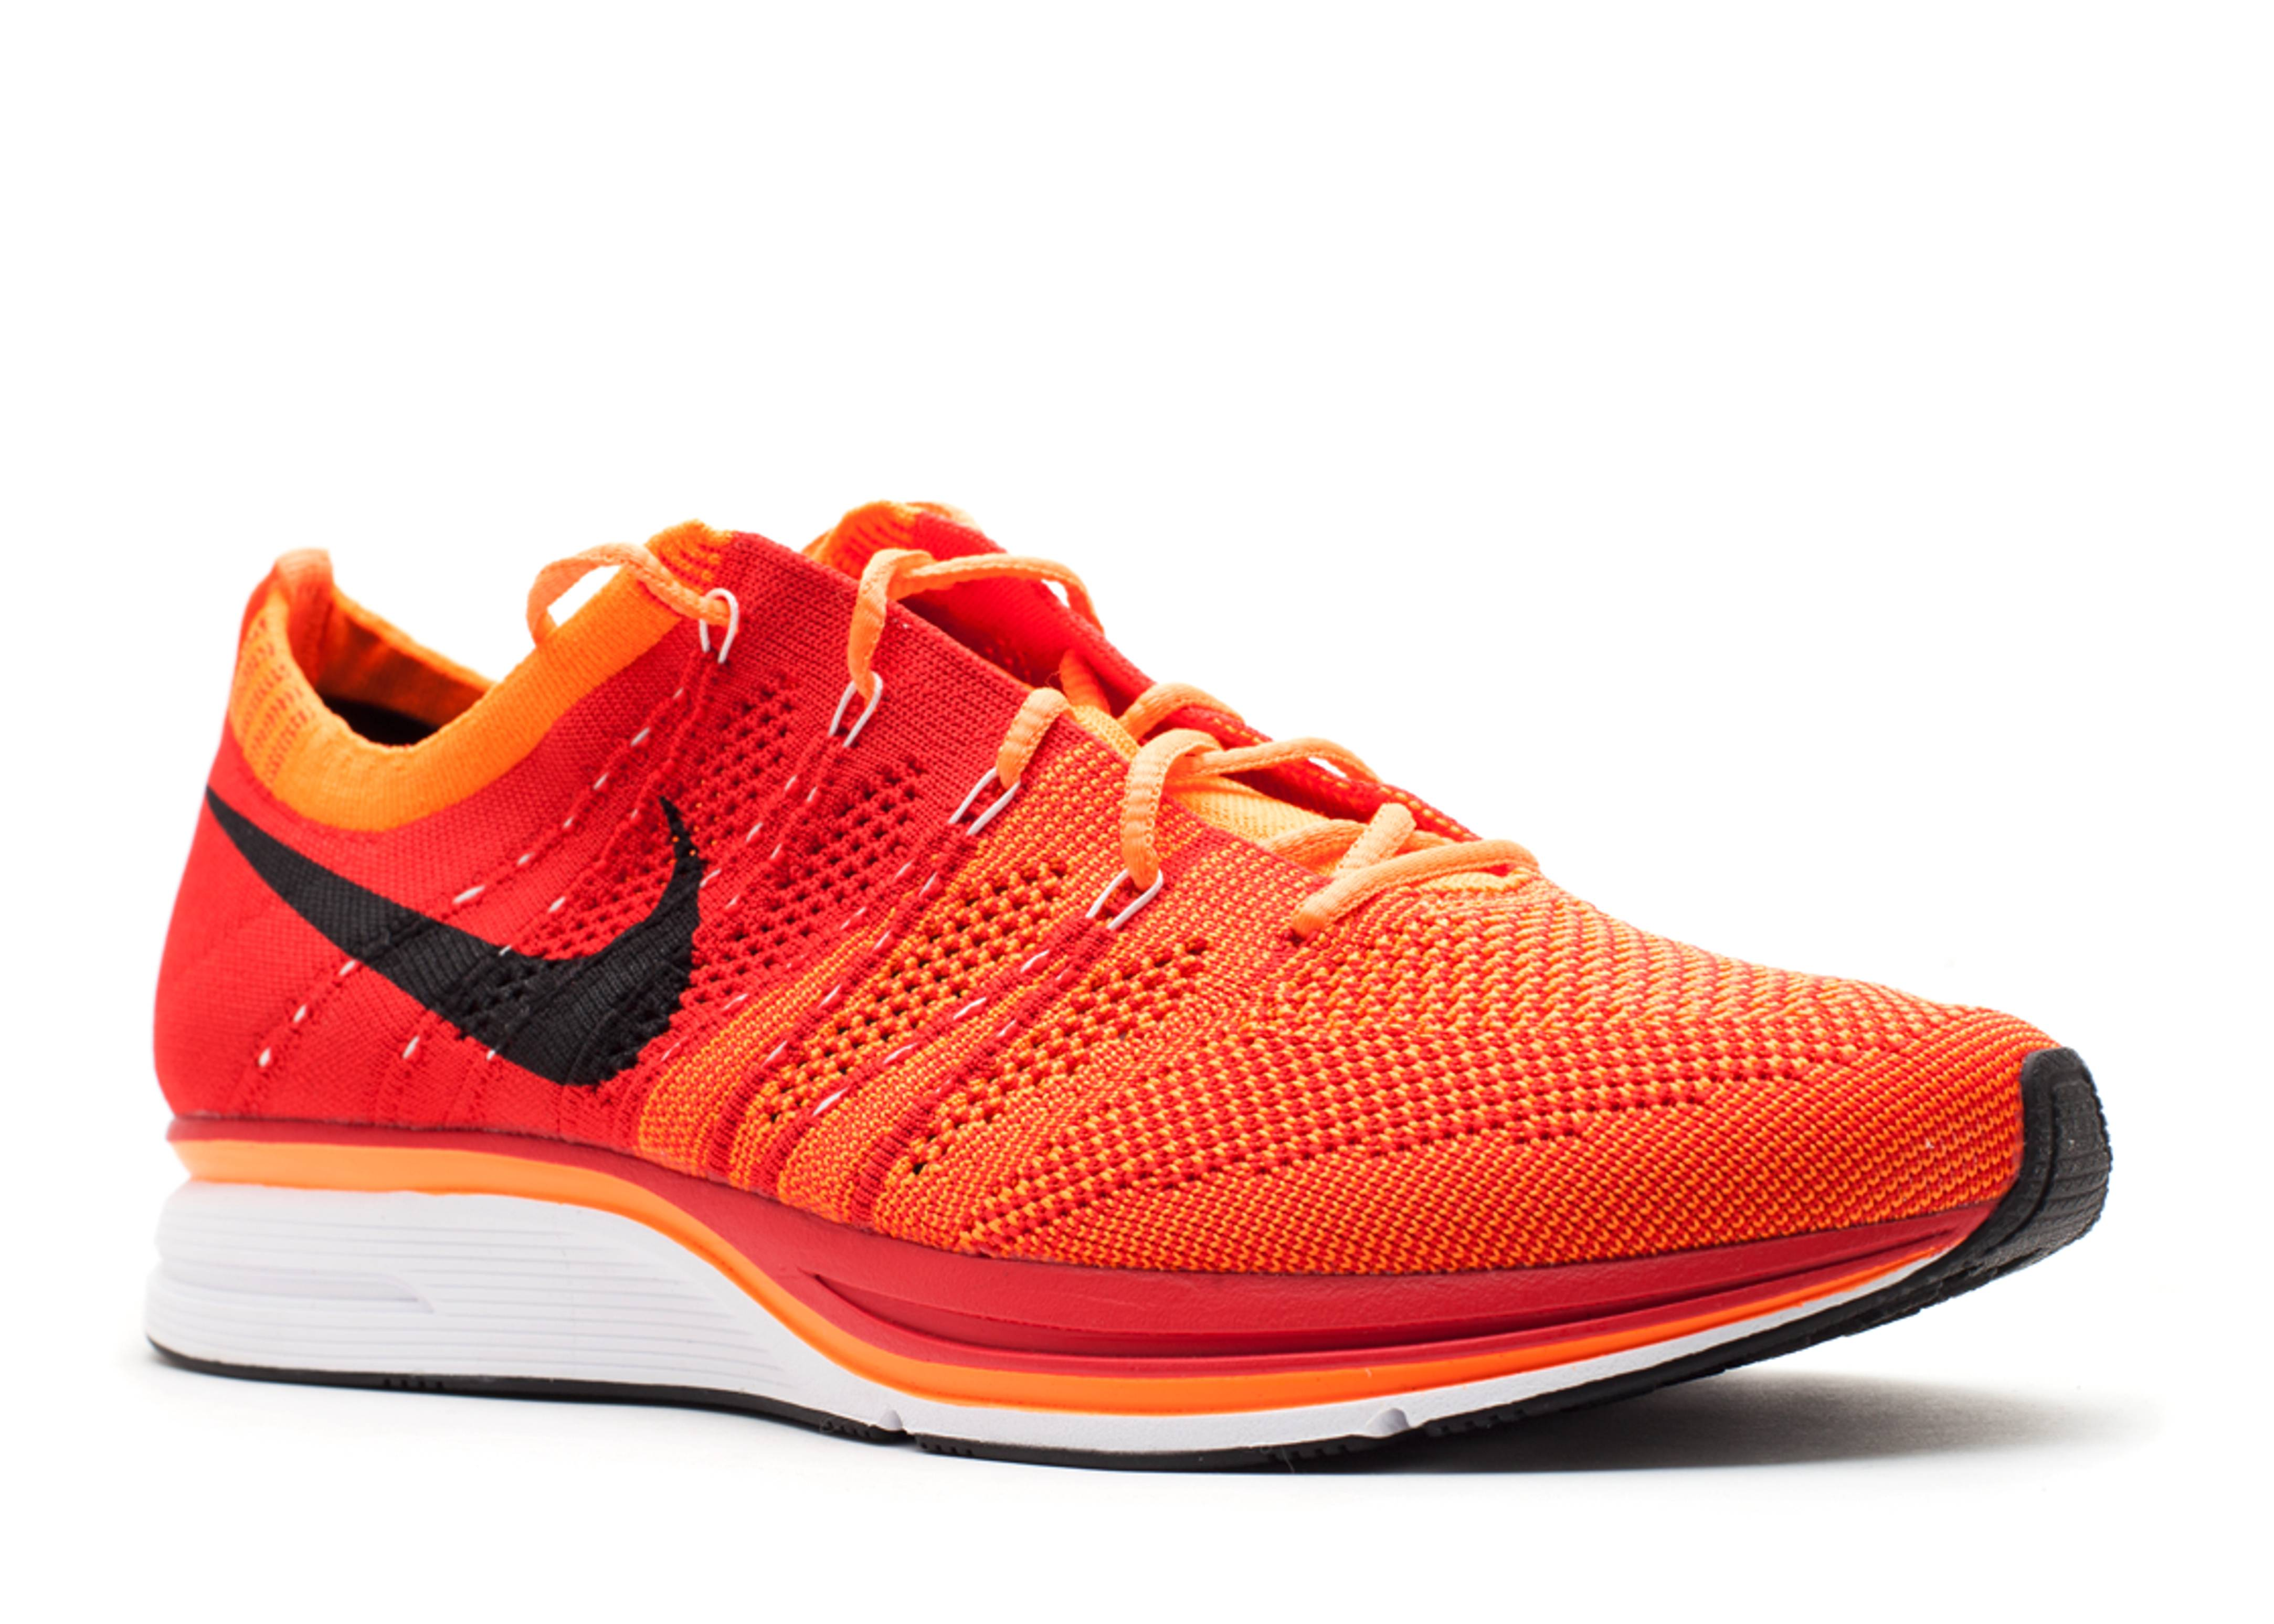 a9157ceec395 ... shop fd1e2 cd747 nike. flyknit trainer+ ... Flyknit Trainer Total Orange  Dark Grey  Nike Flyknit Trainer+ University Red White-Total ...